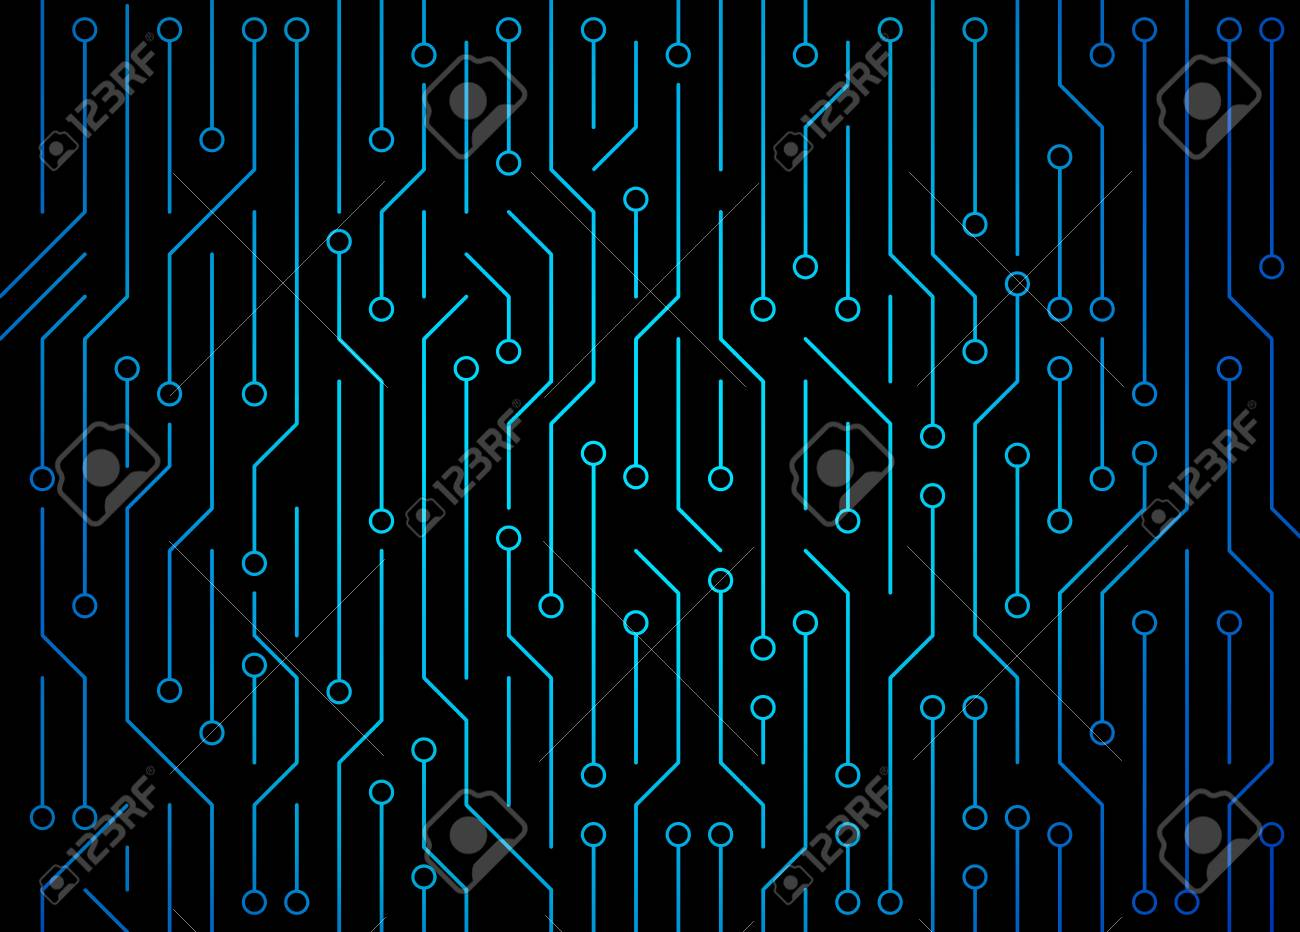 Circuit board. High-tech technology background texture. Pattern abstract illustration. - 101683797